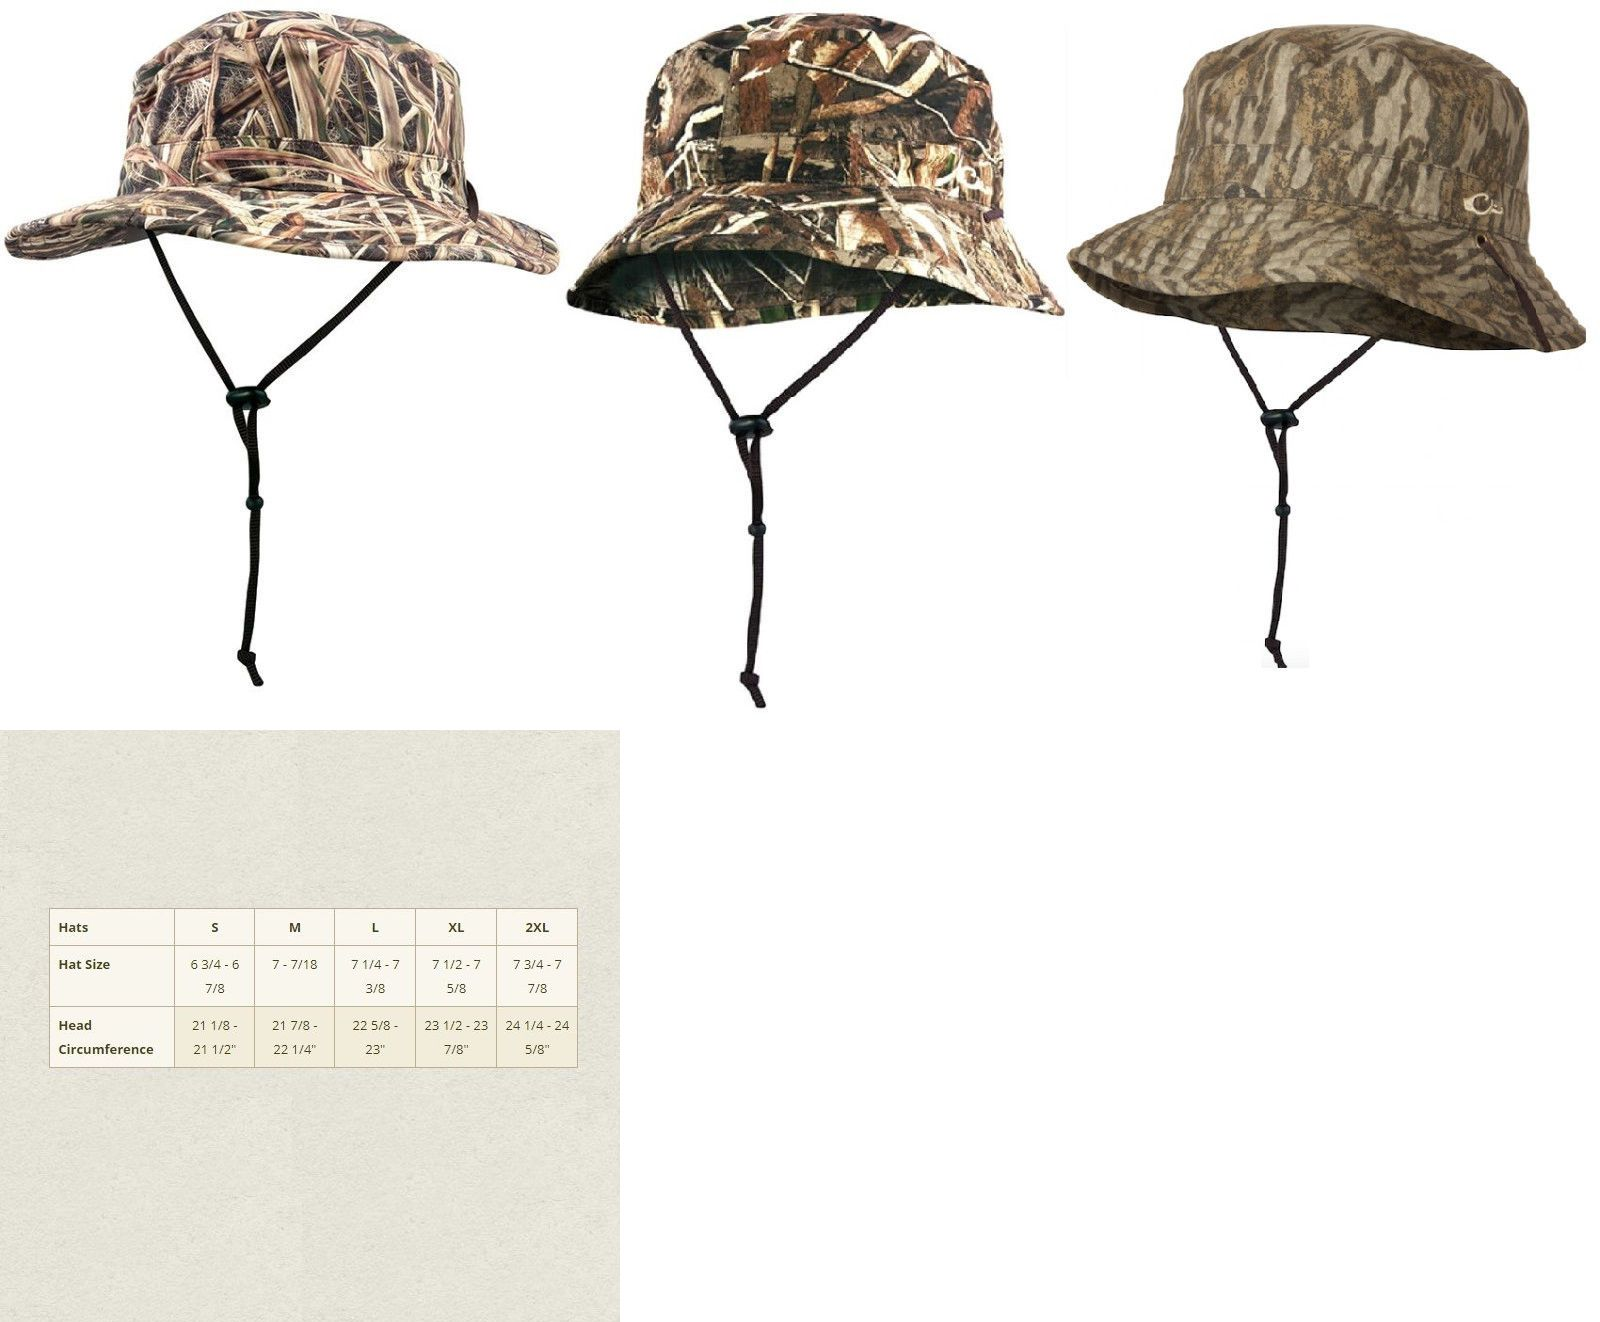 b299950621ebcb FROGG TOGGS NEW WATERPROOF/BREATHABLE BUCKET HAT-CRUSHABLE-HUNTING-OUTERWEAR  Men's Clothing